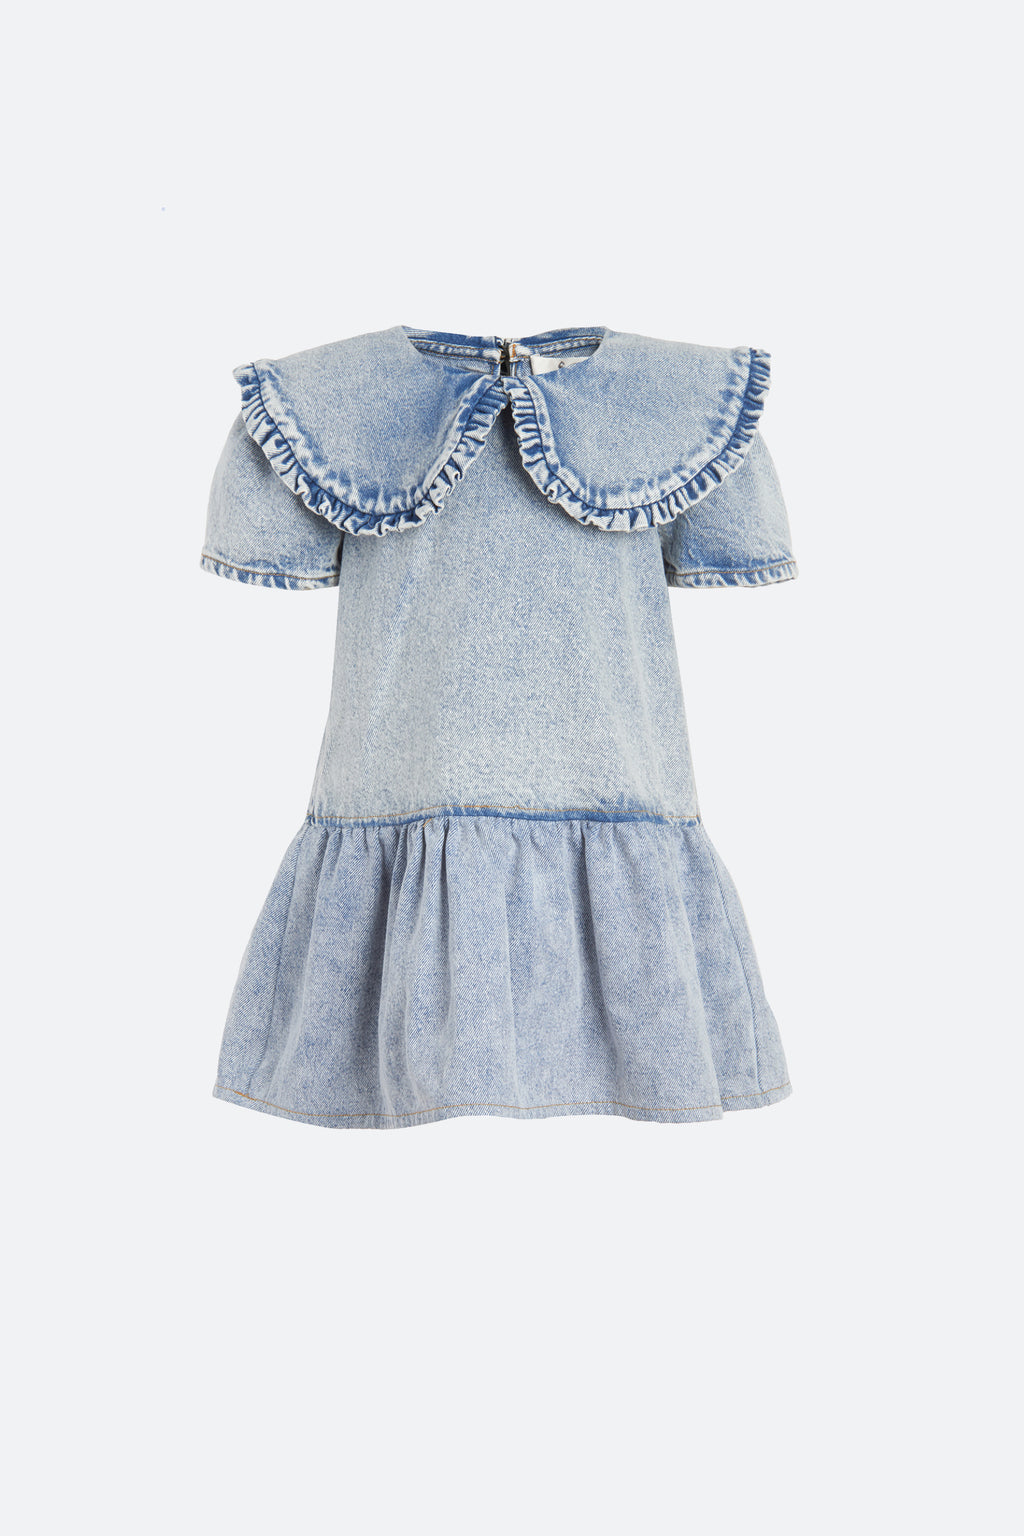 Bubbie Kids Tunic